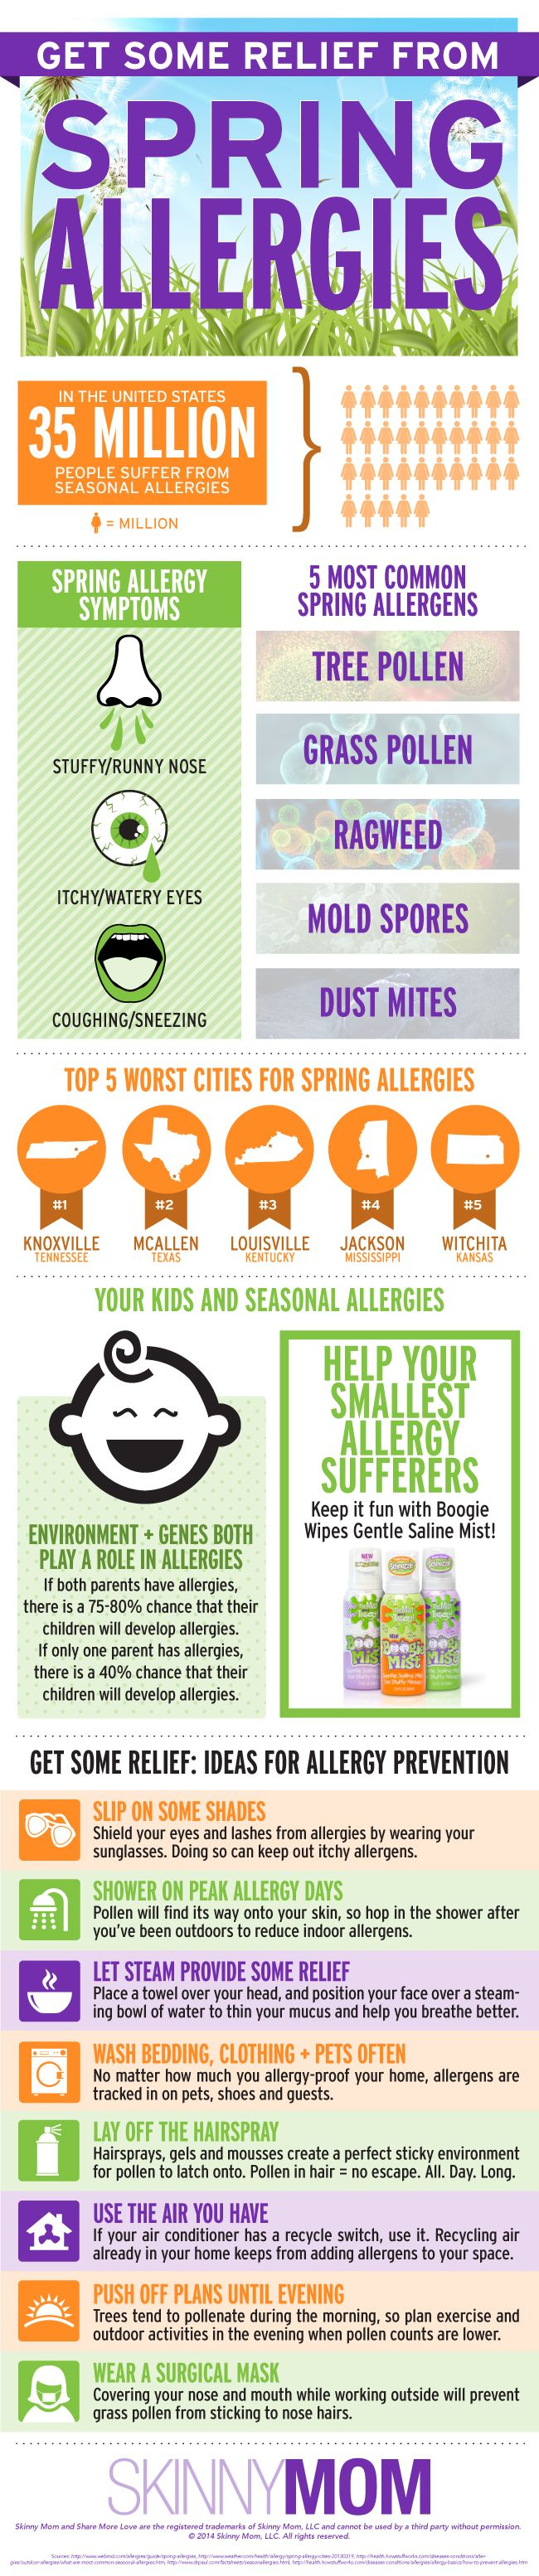 1000 Images About Allergy On Pinterest Health Lungs And Indoor